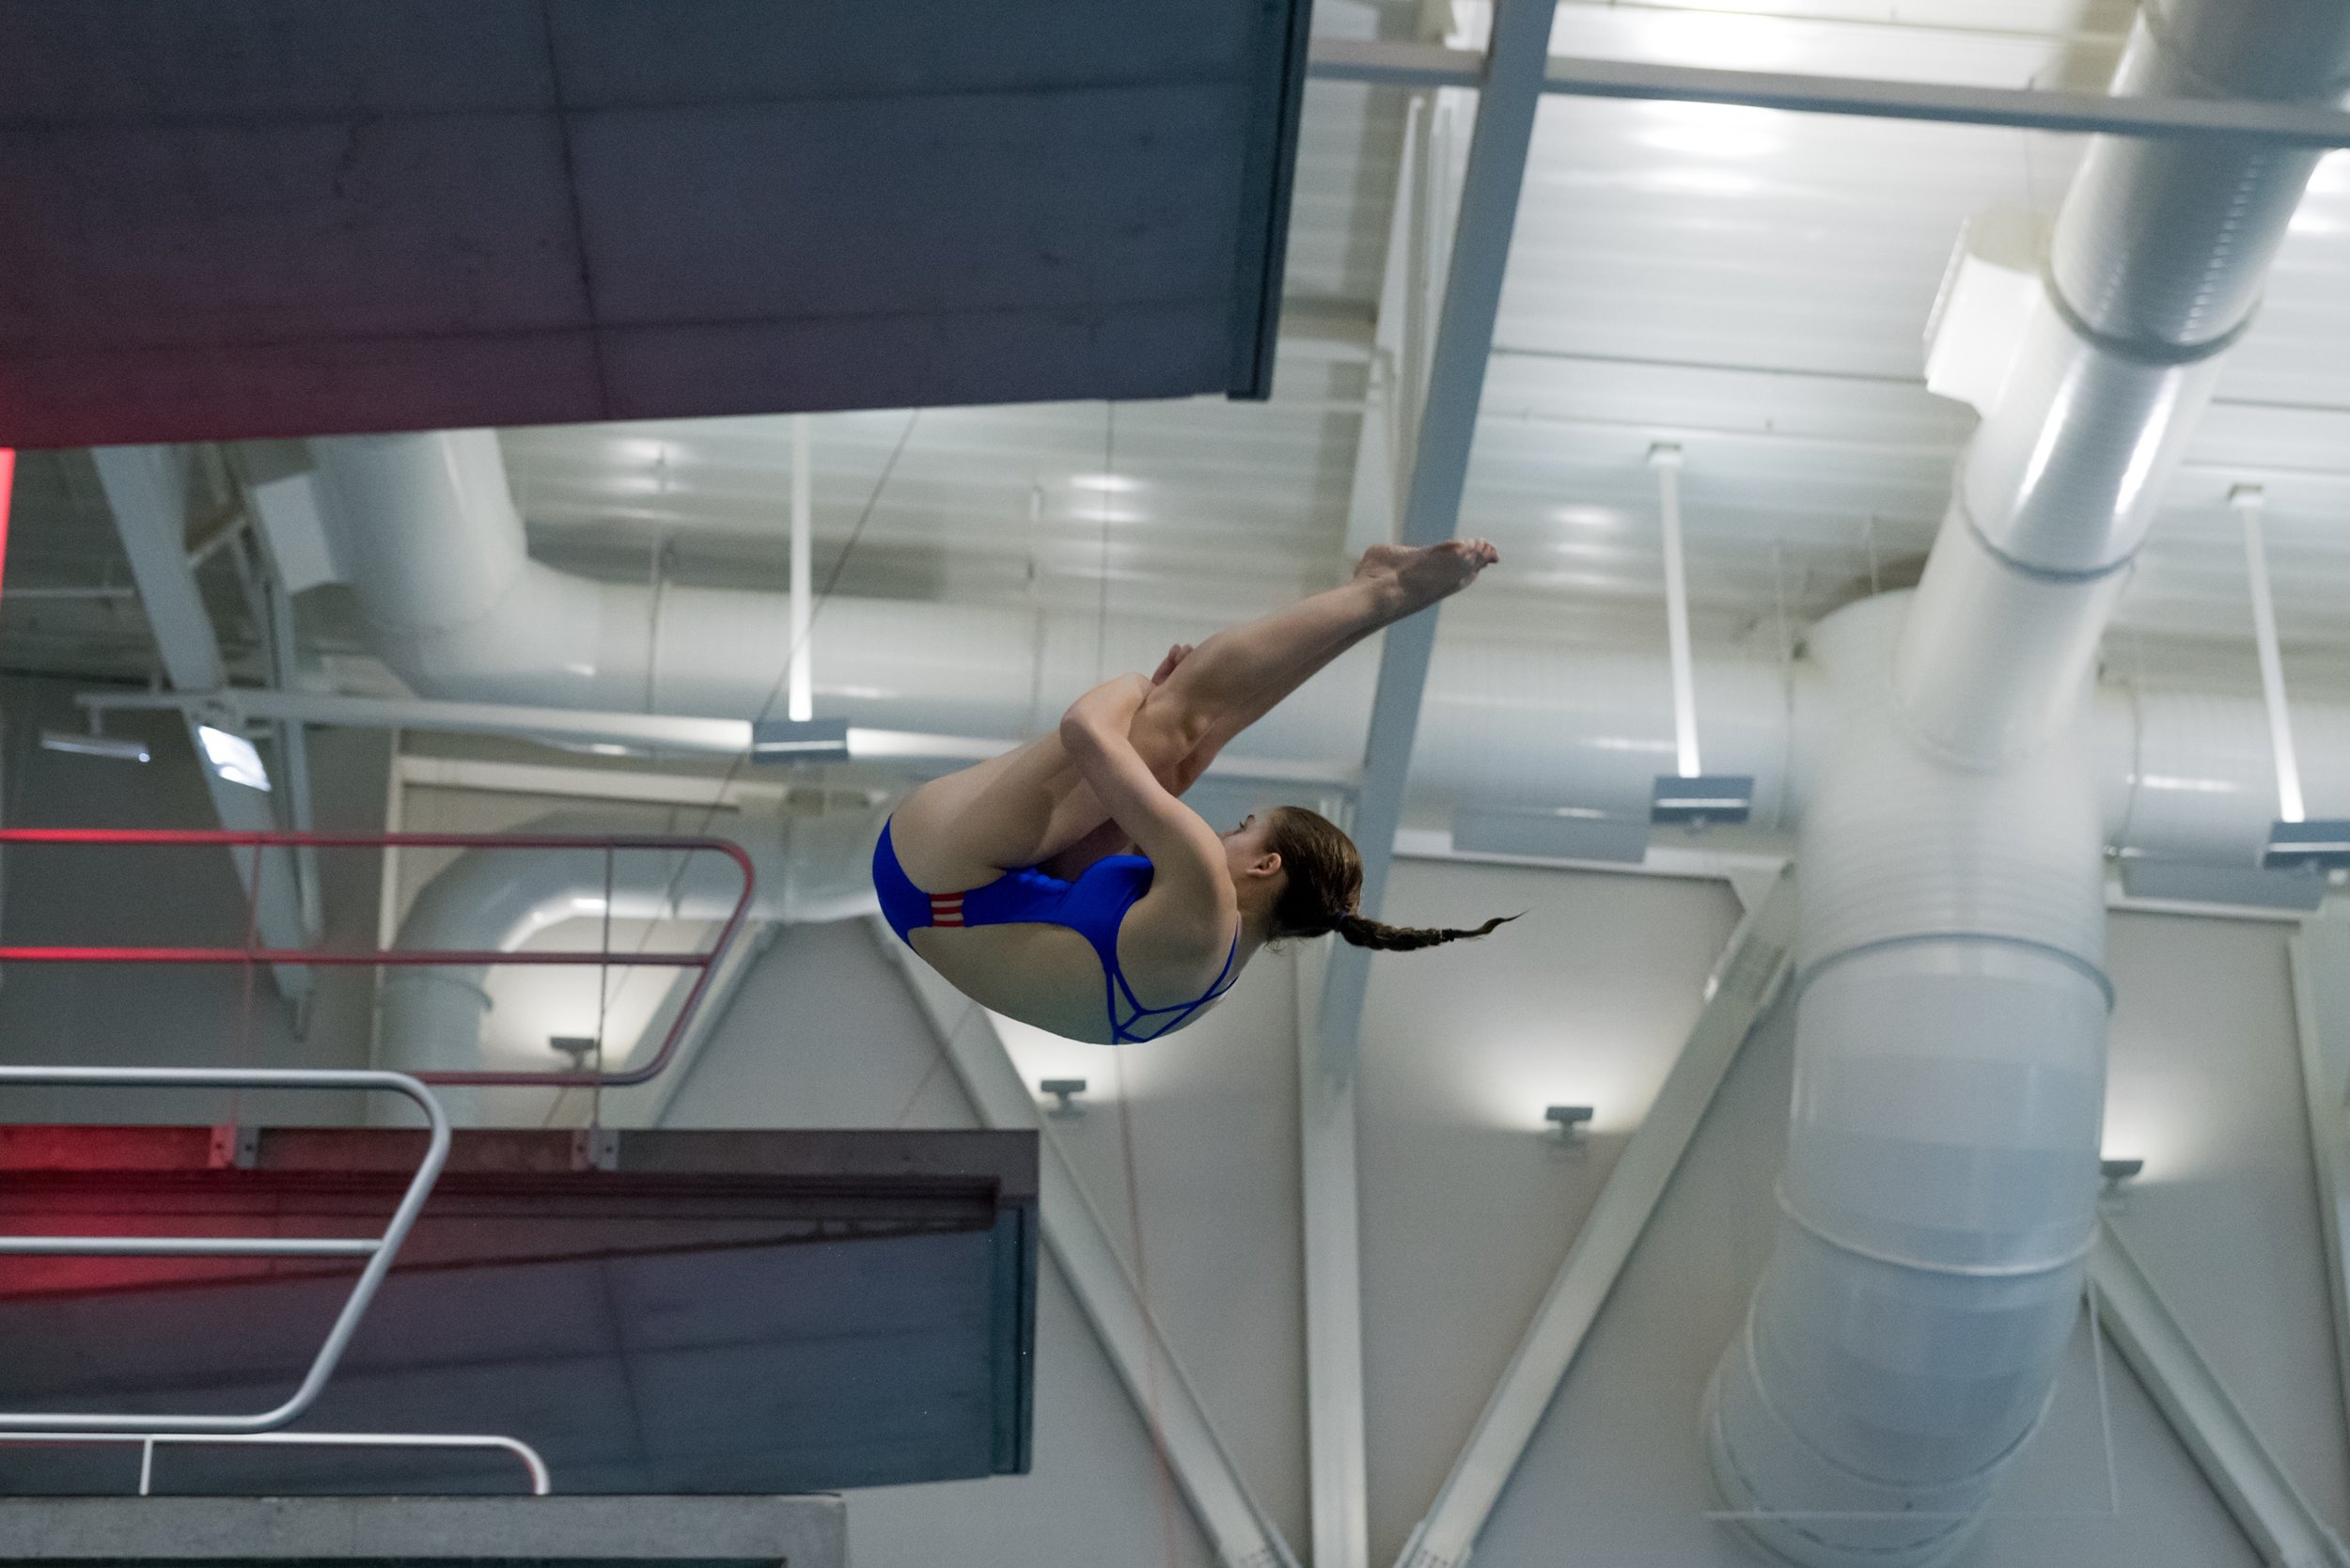 Ana is doing a 403b, an inward 1 1/2 pike, on the 3-meter platform.